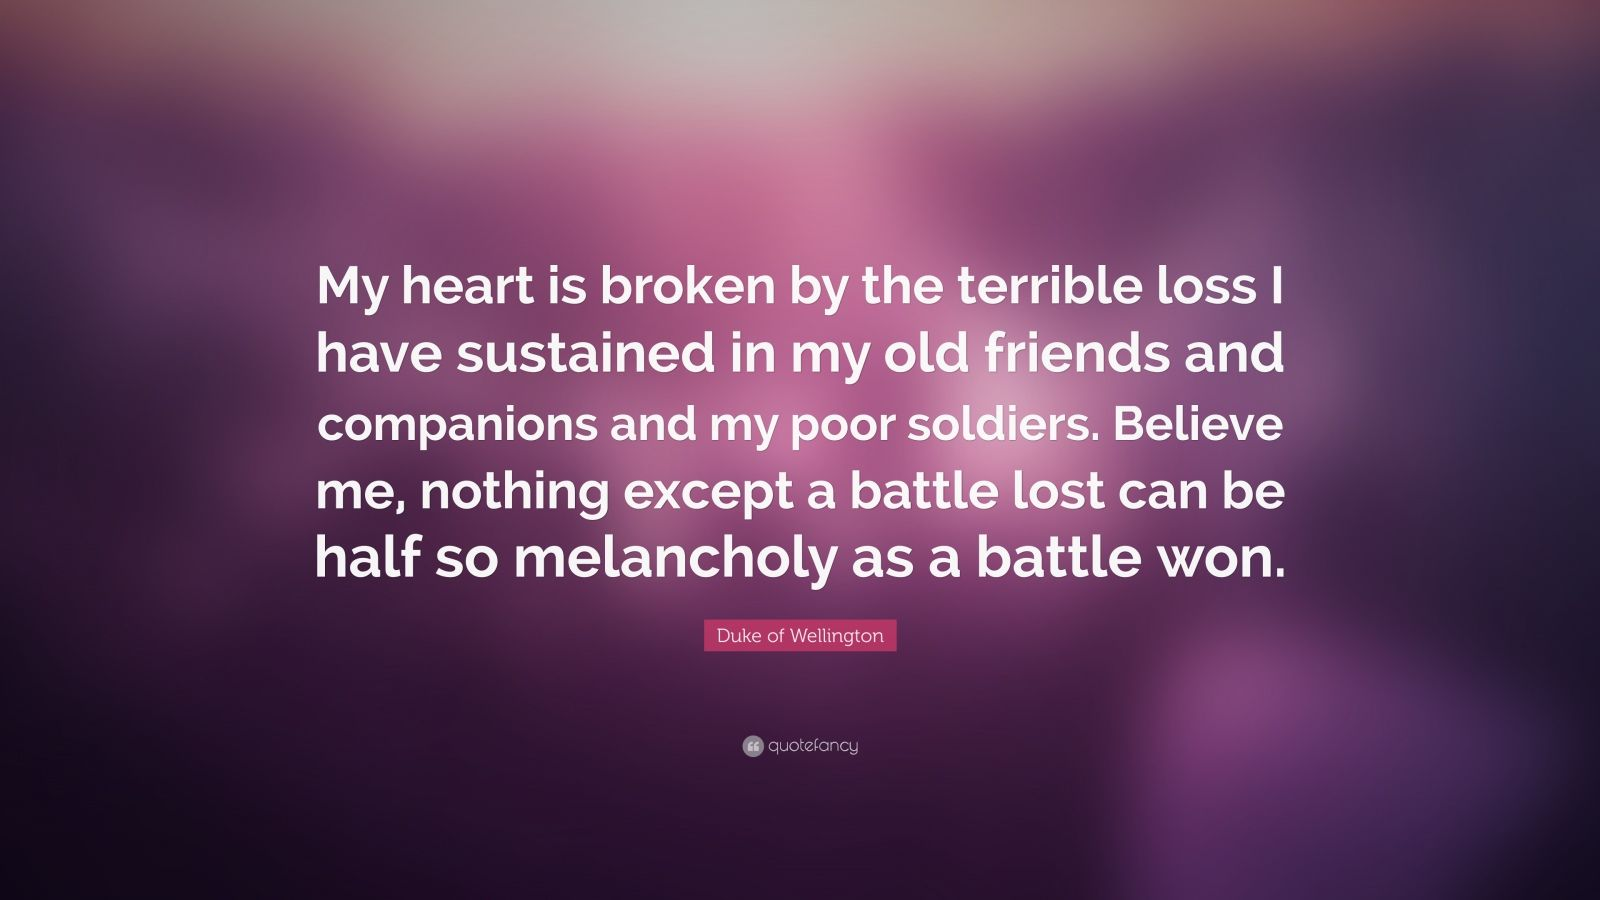 """Duke of Wellington Quote: """"My heart is broken by the terrible loss I have sustained in my old friends and companions and my poor soldiers. Believe me, nothing except a battle lost can be half so melancholy as a battle won."""""""